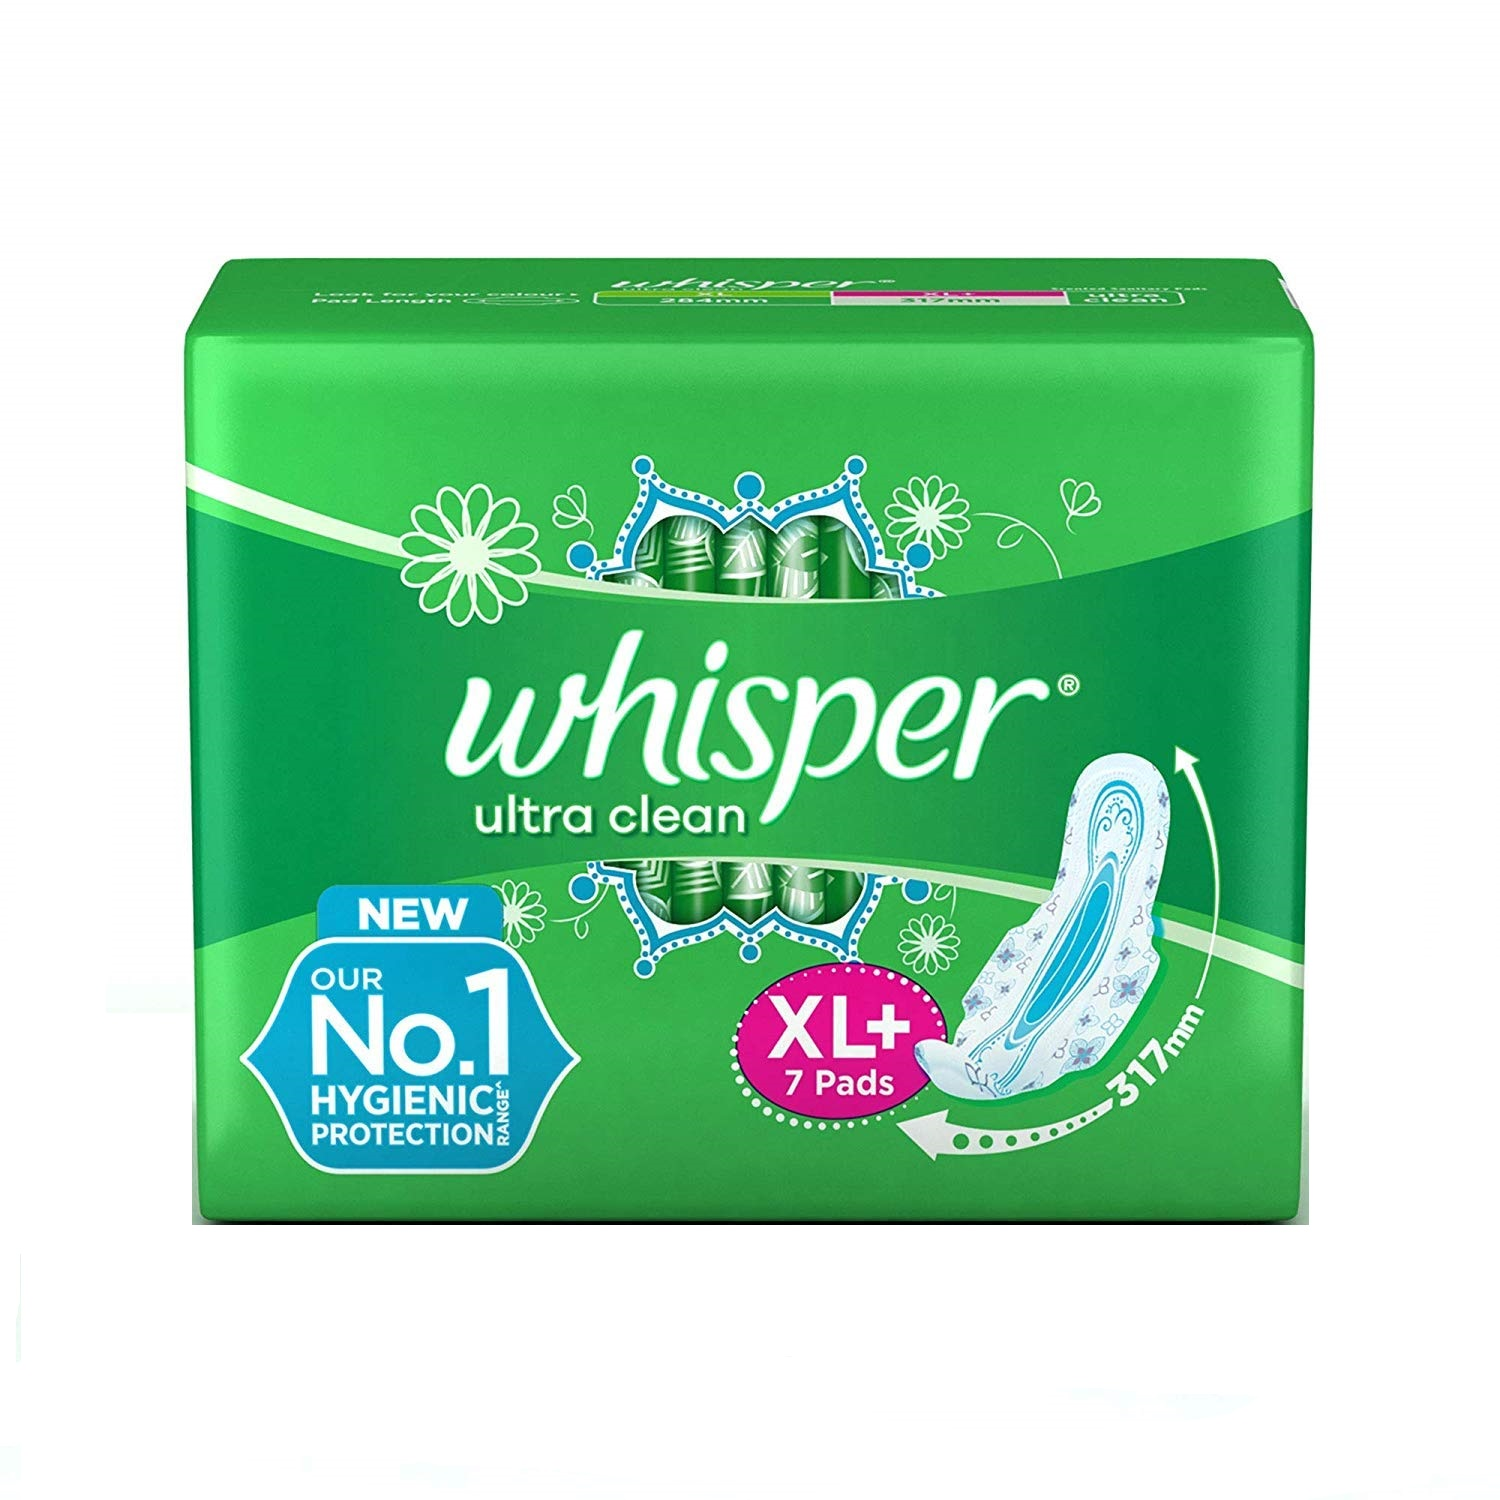 Whisper Ultra Clean XL+ 7 Pads